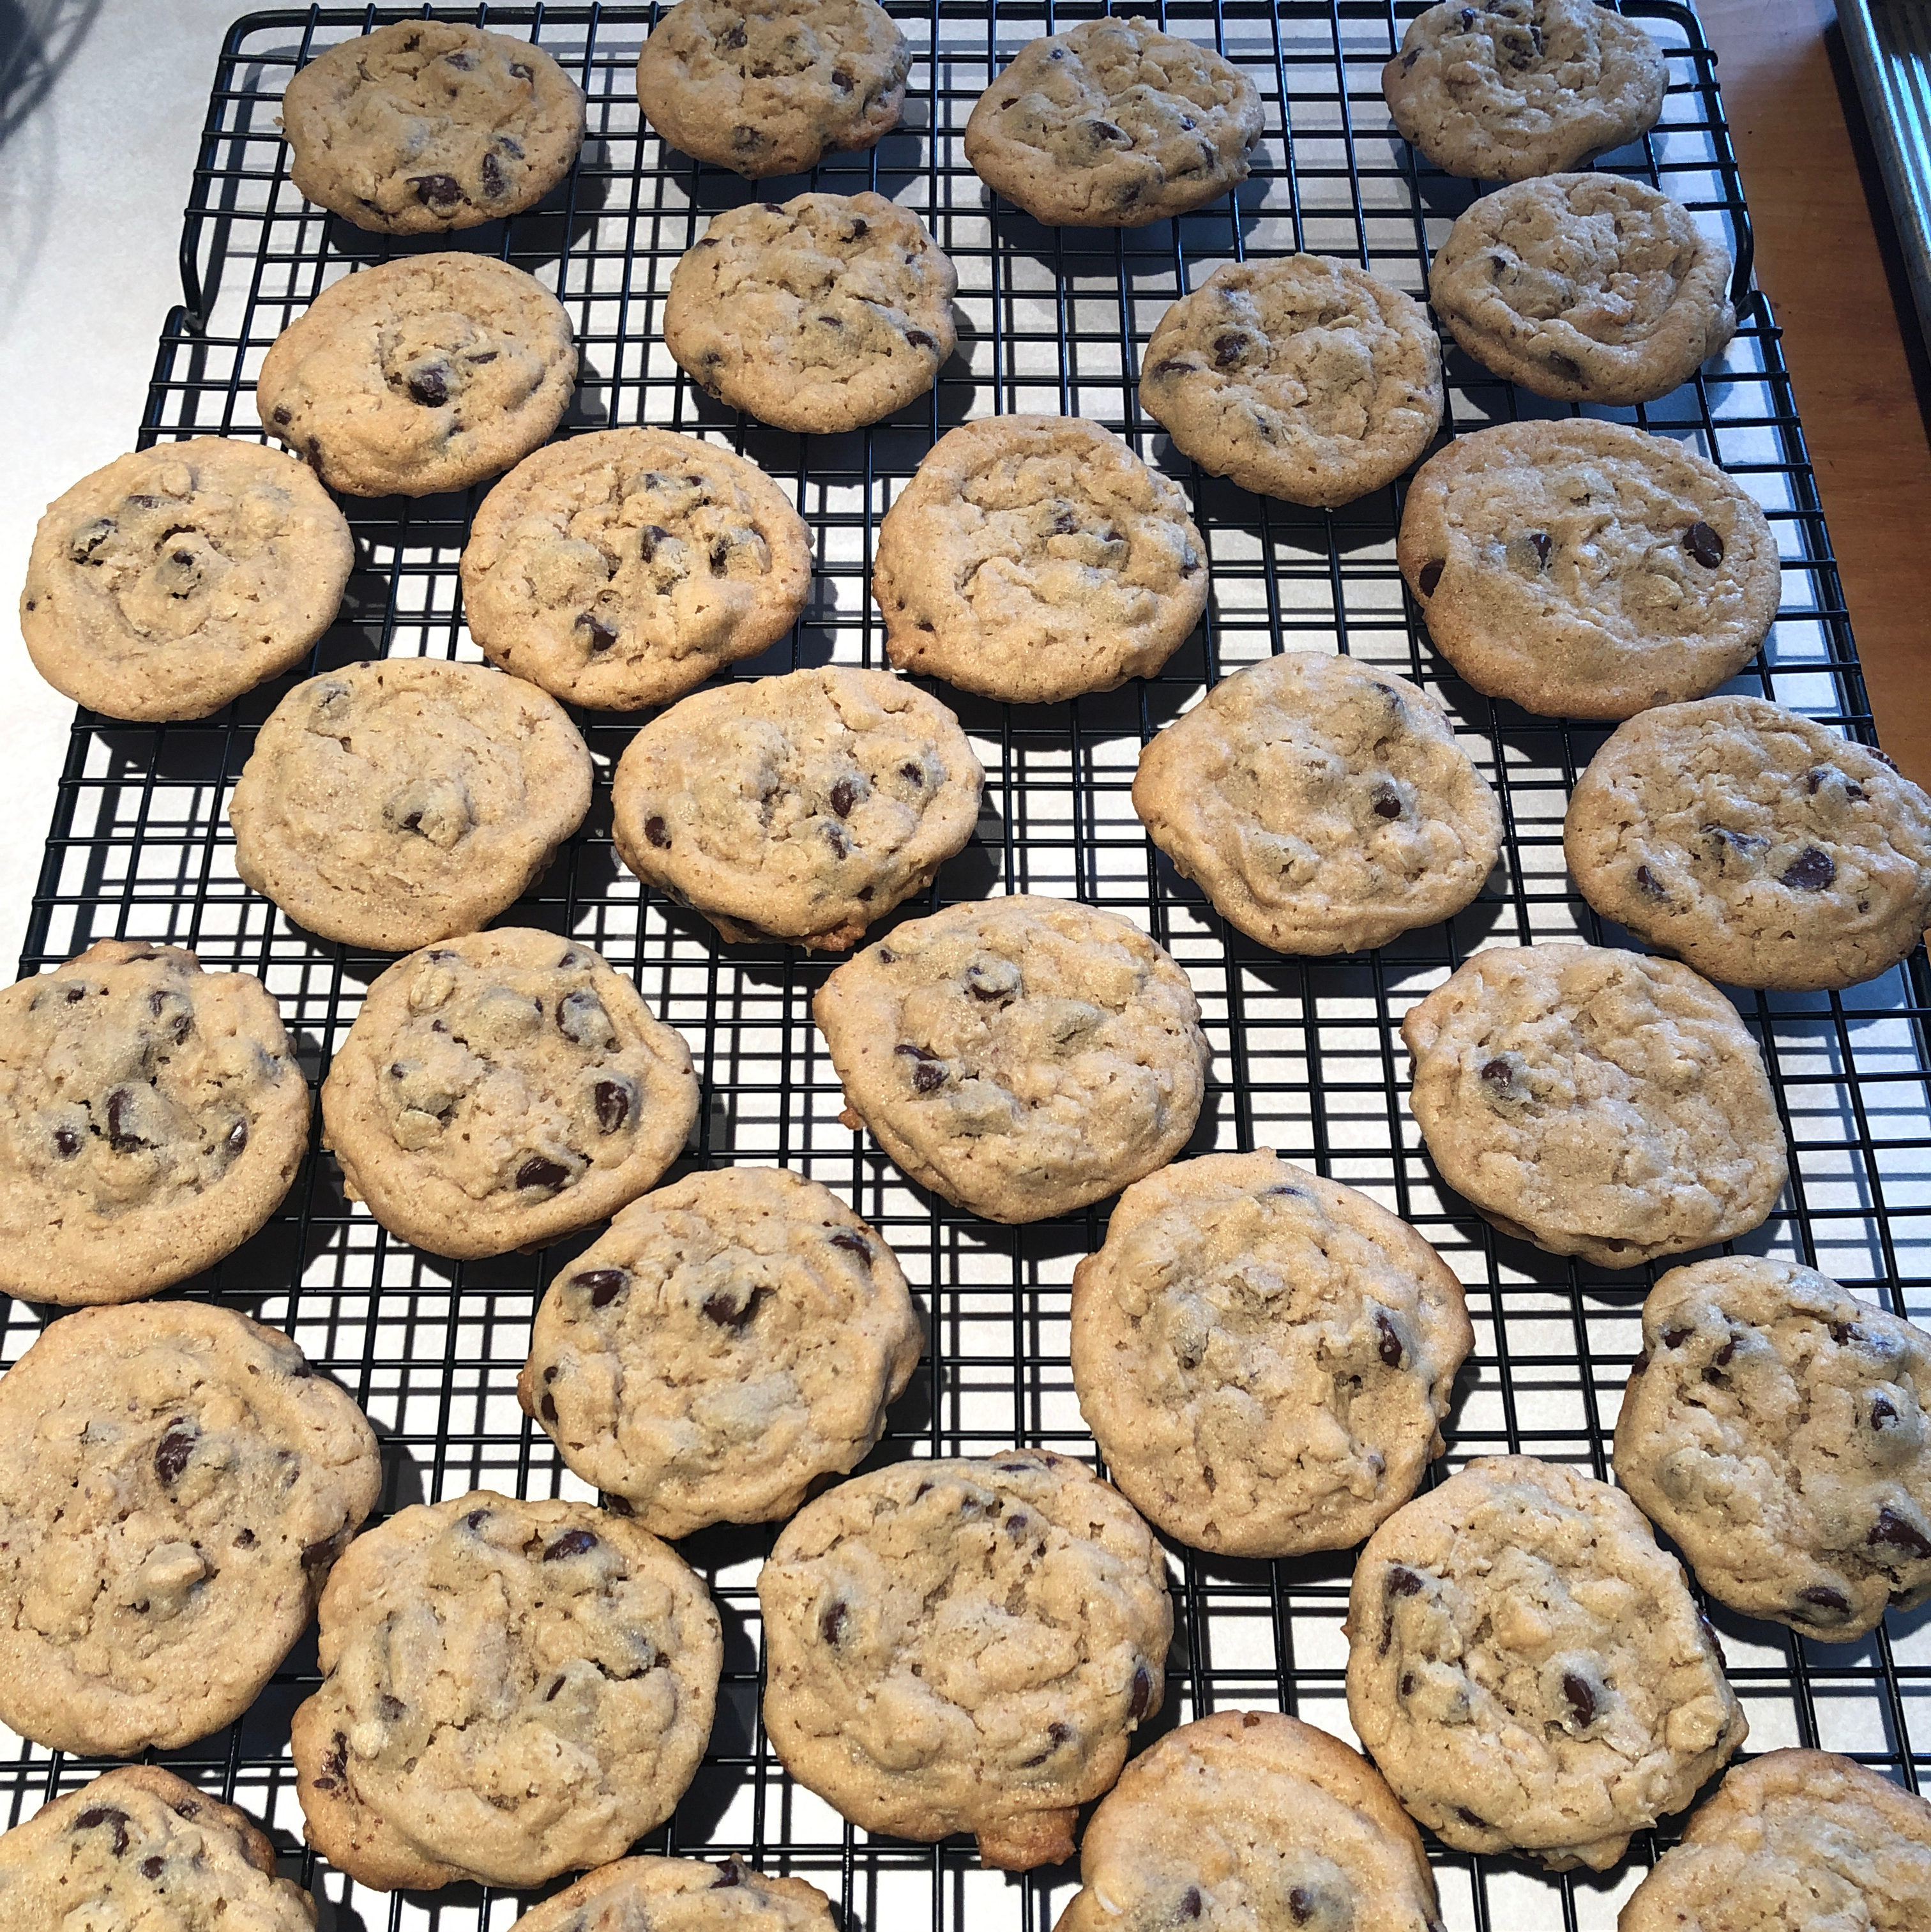 Outrageous Chocolate Chip Cookies nathogan